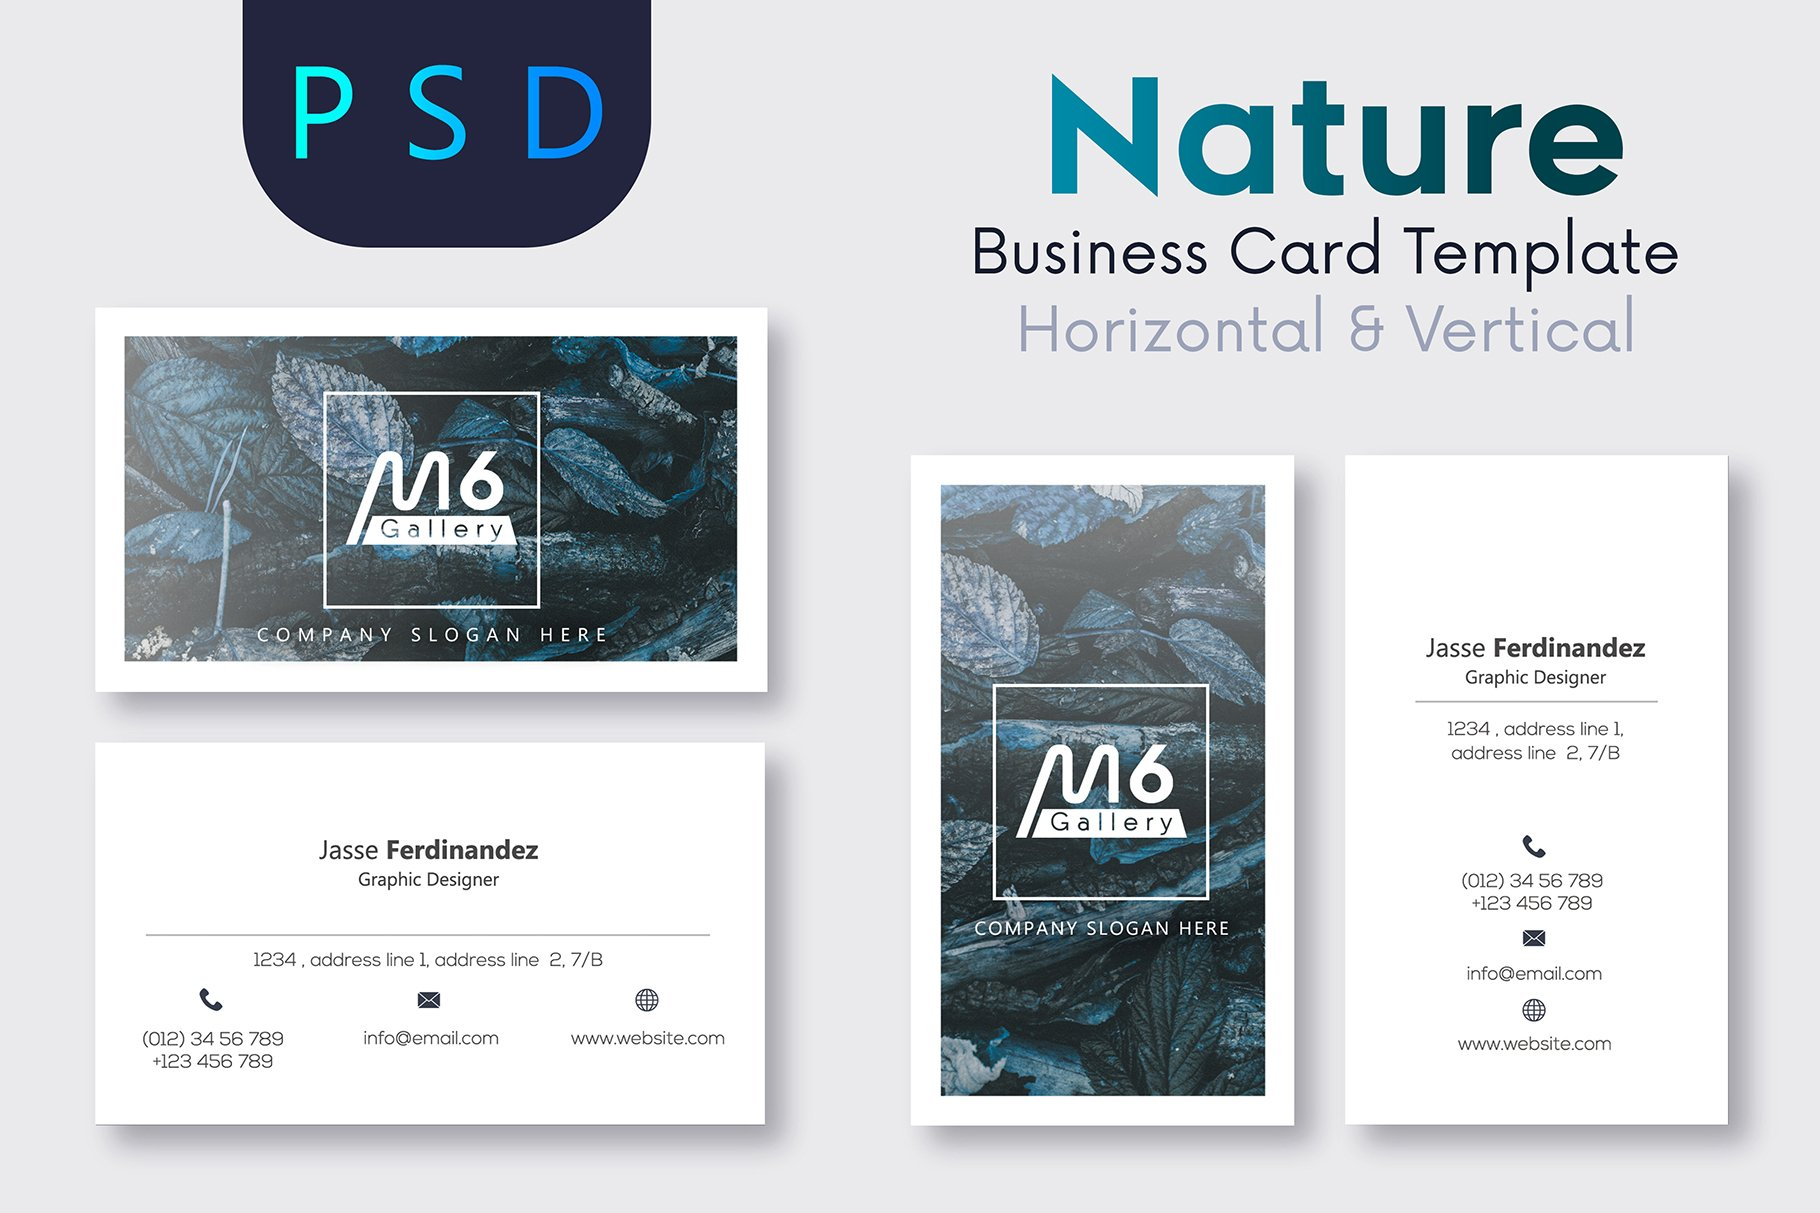 Nature business card template s12 business card templates nature business card template s12 business card templates creative market reheart Gallery